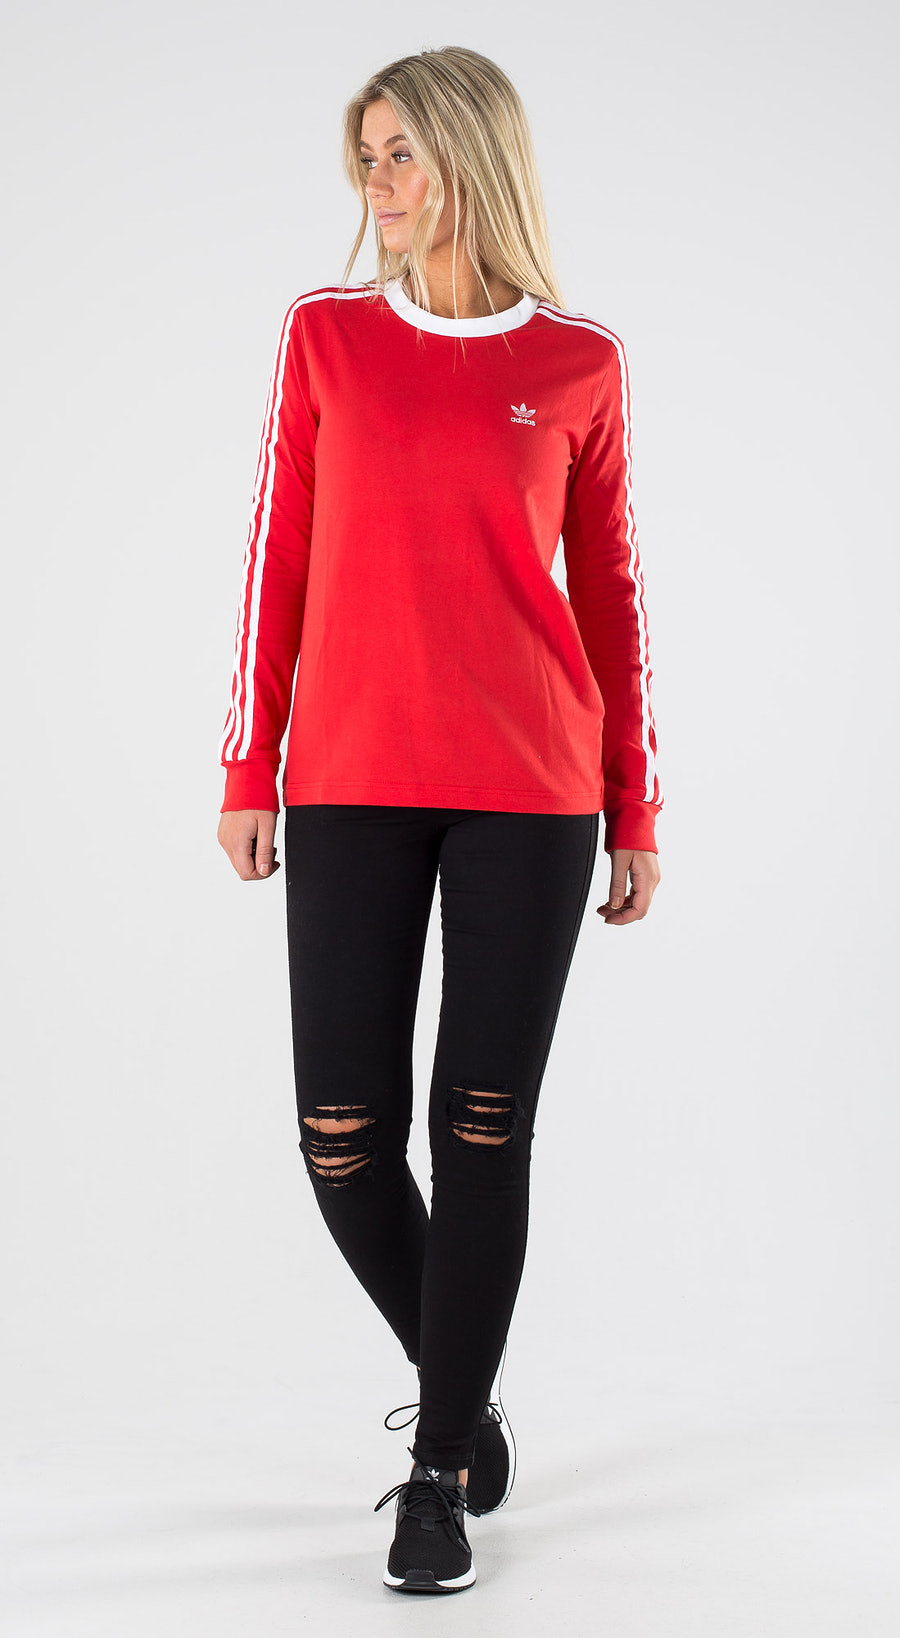 Adidas Originals 3 Stripe Longsleeve Lush Red White Outfit Multi